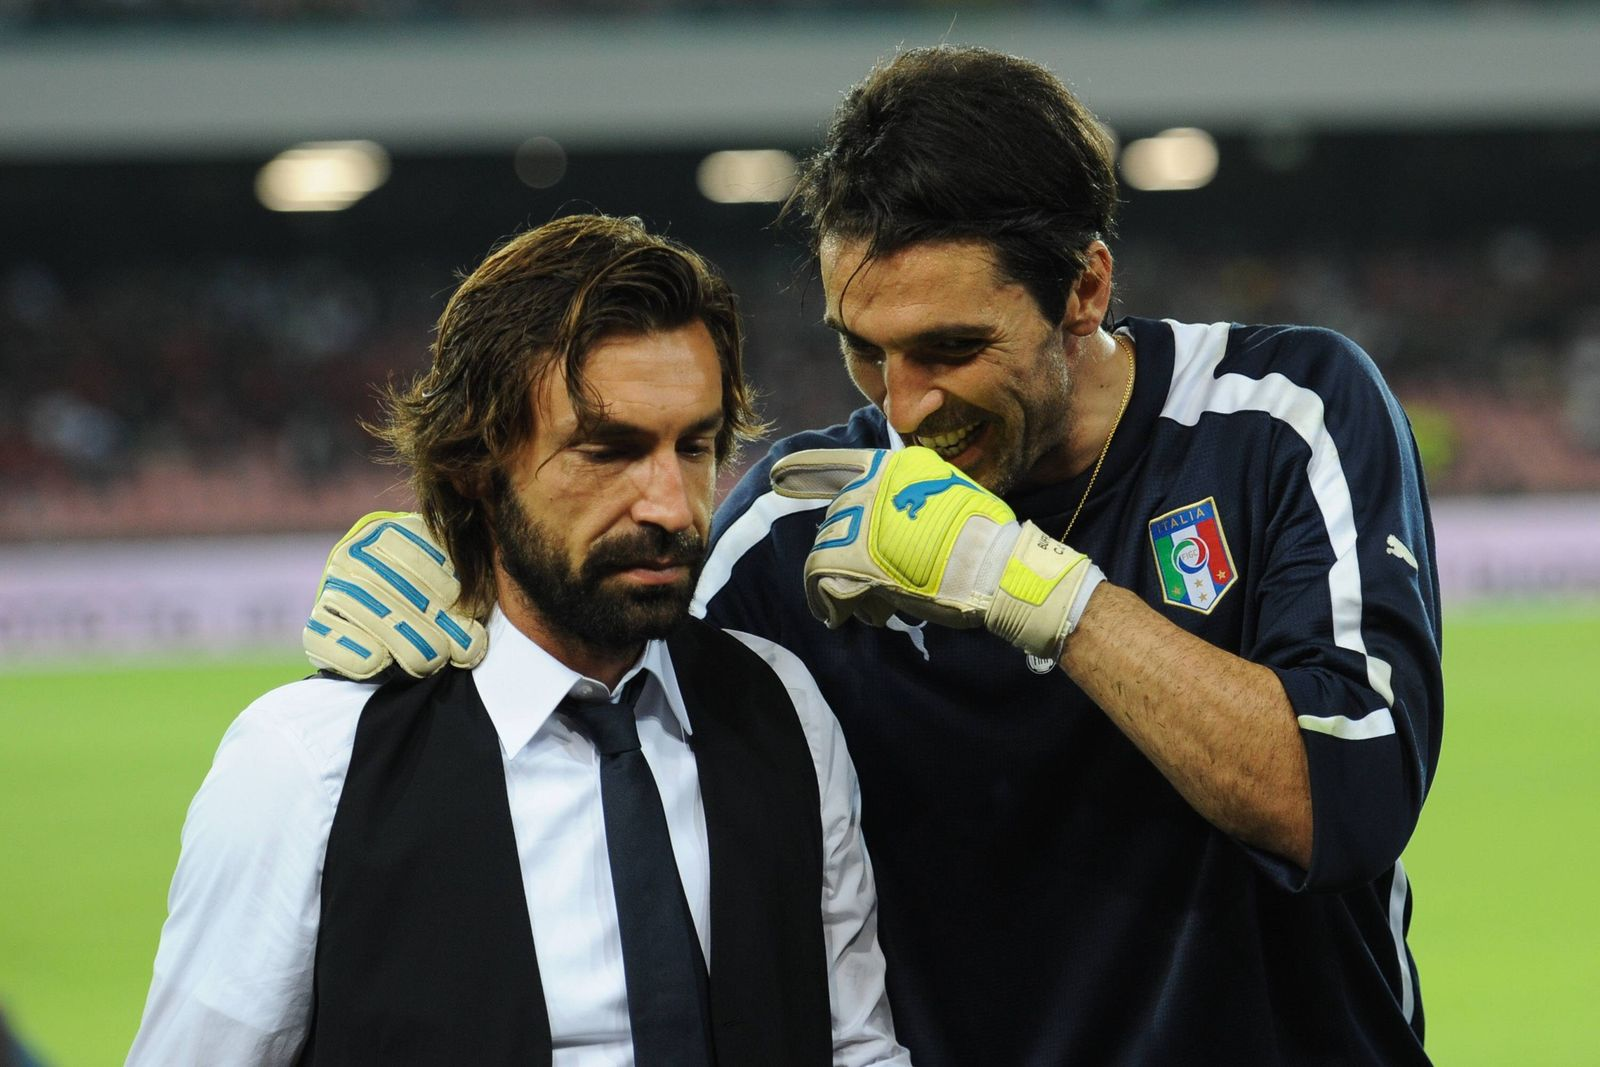 Oct. 15, 2013 - Andrea Pirlo and Gianluigi Buffon Talk before FIFA 2014 world cup qualifier between Italy and Armenia o